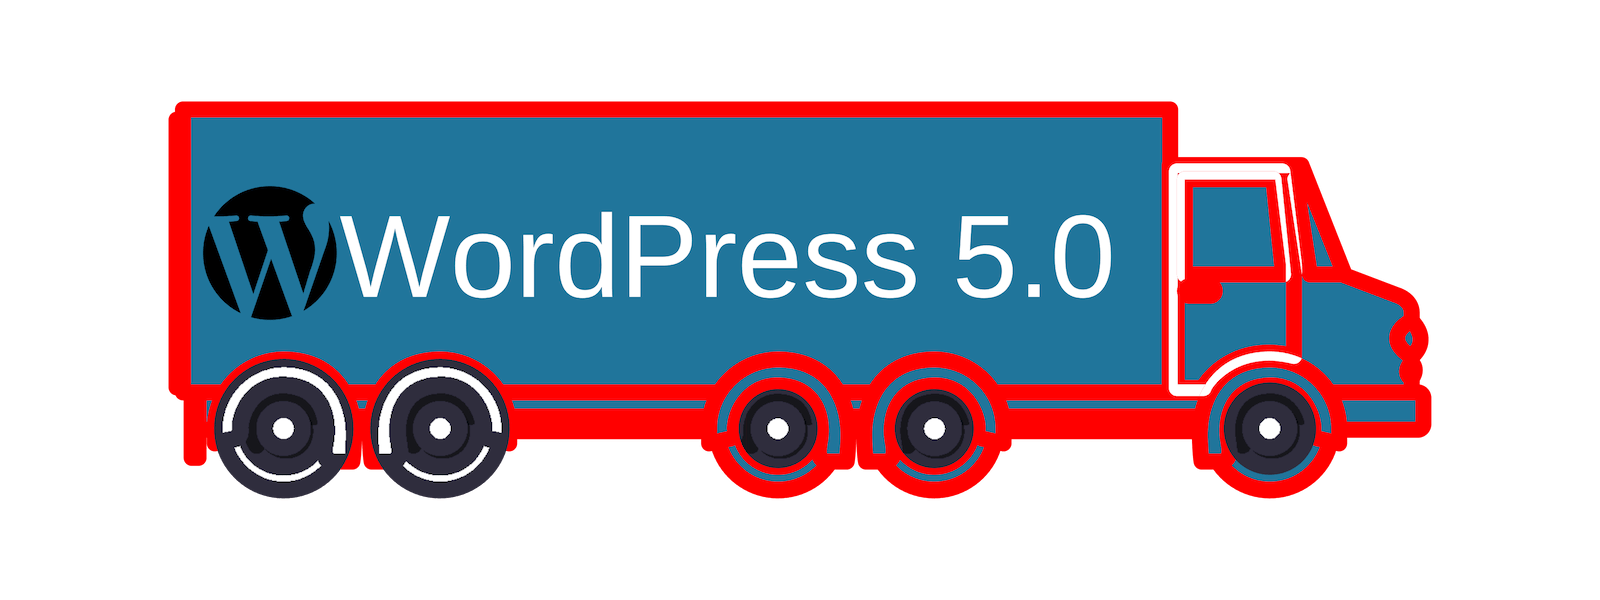 gutenberg is coming, release date, wordpress 5.0